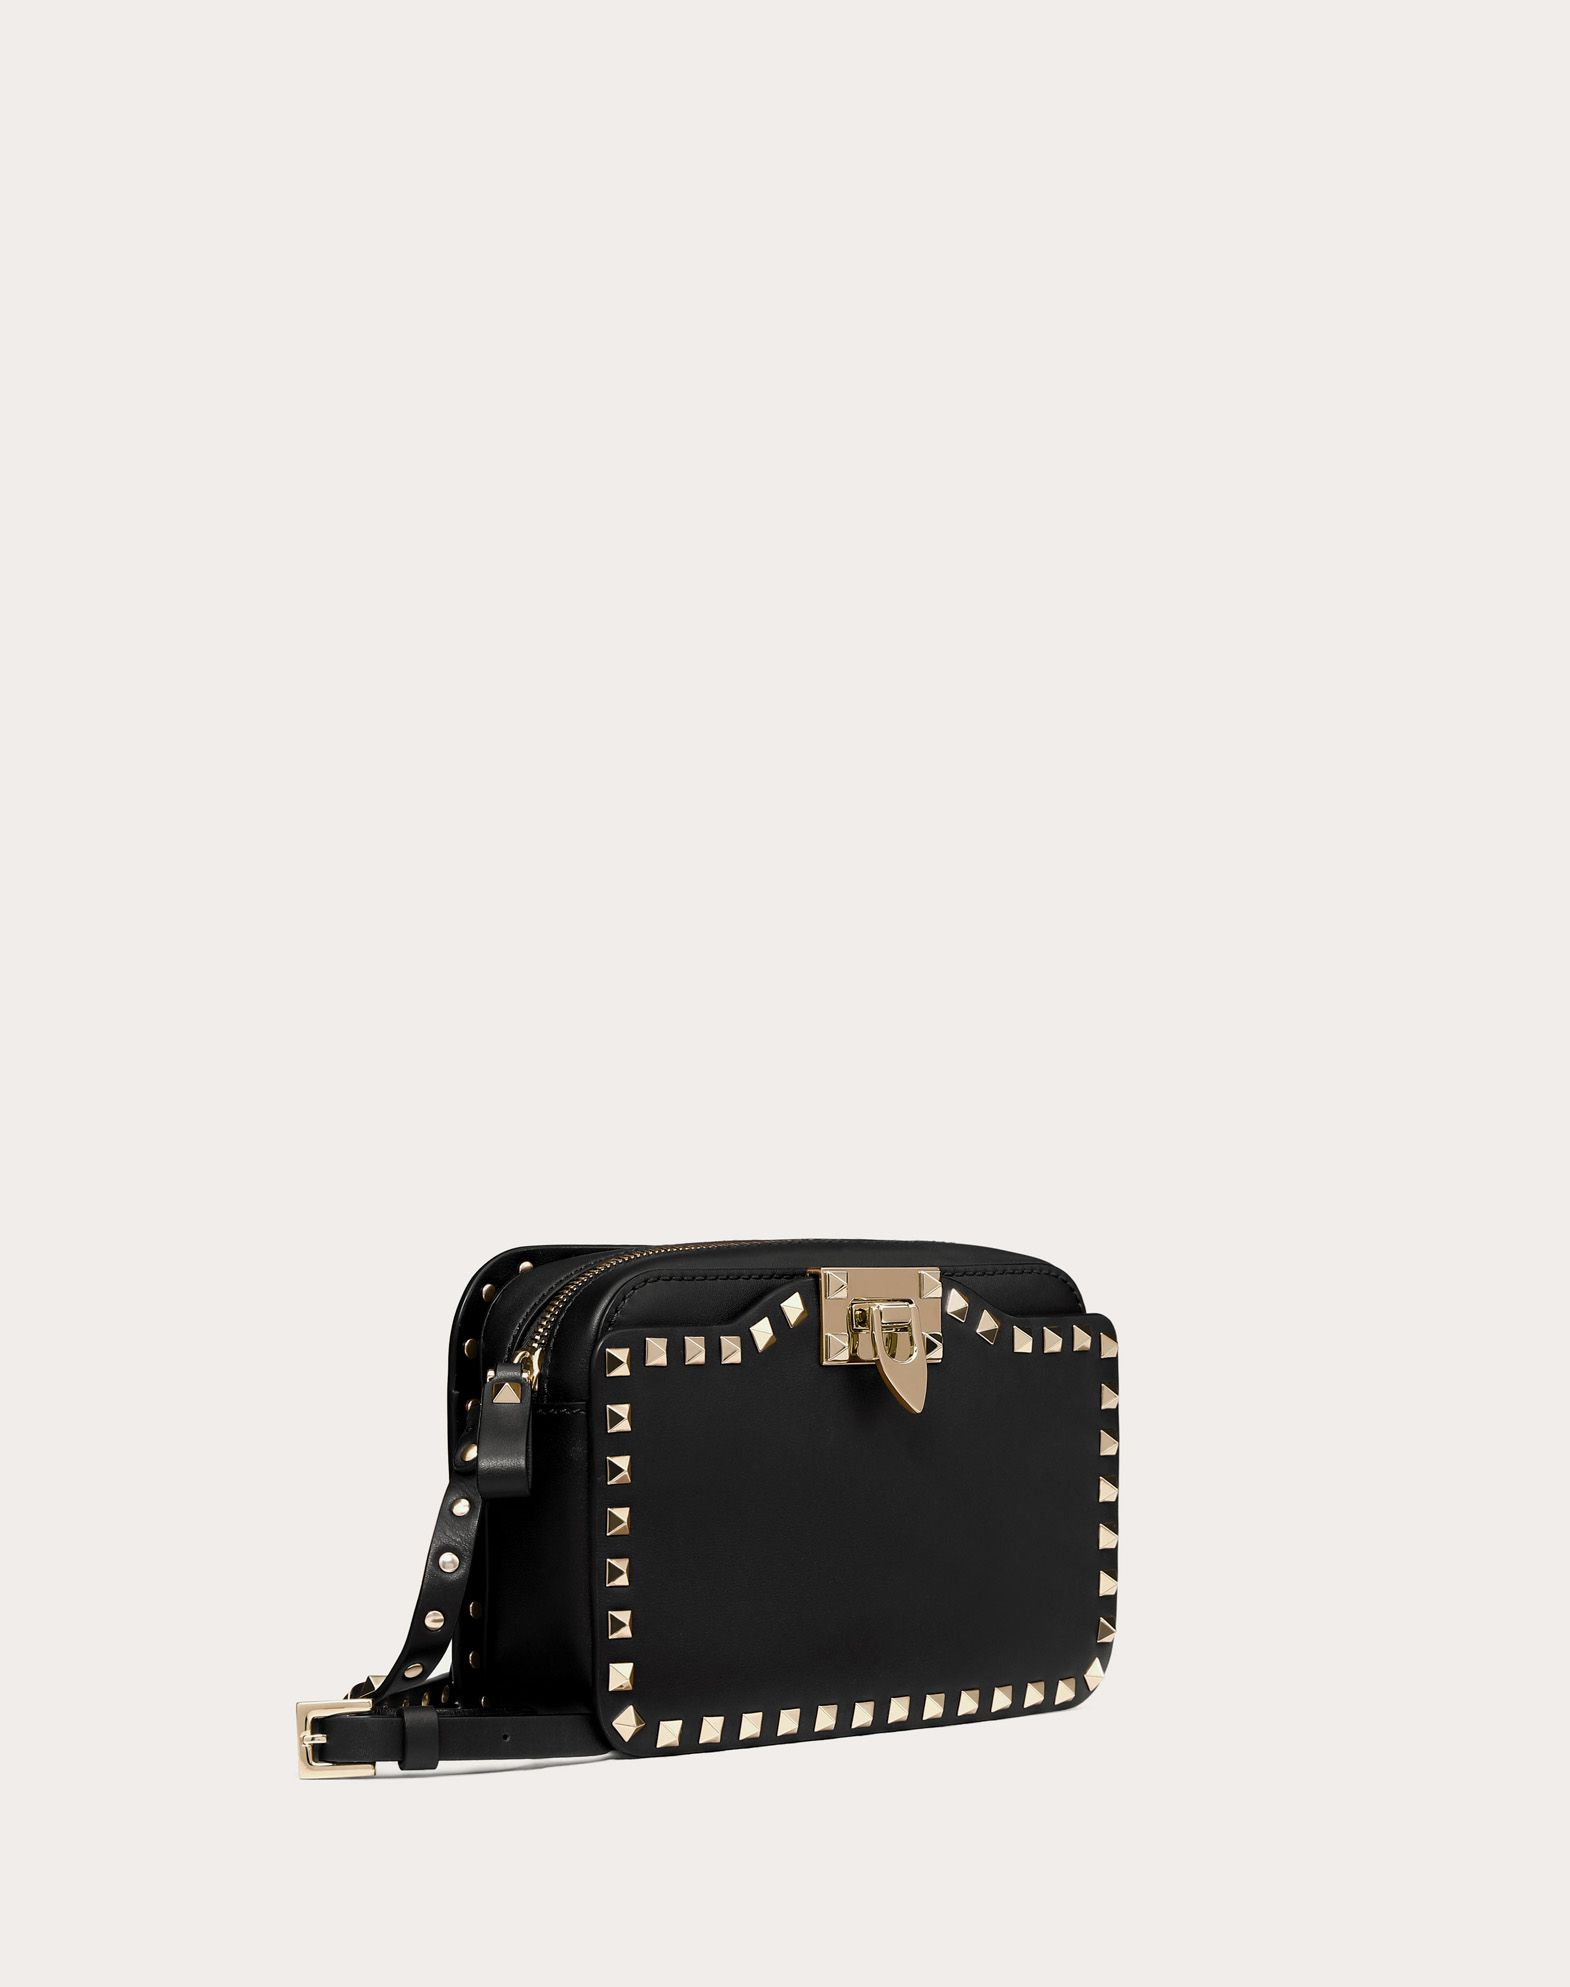 VALENTINO GARAVANI Rockstud Cross Body Bag CROSS BODY BAG D r